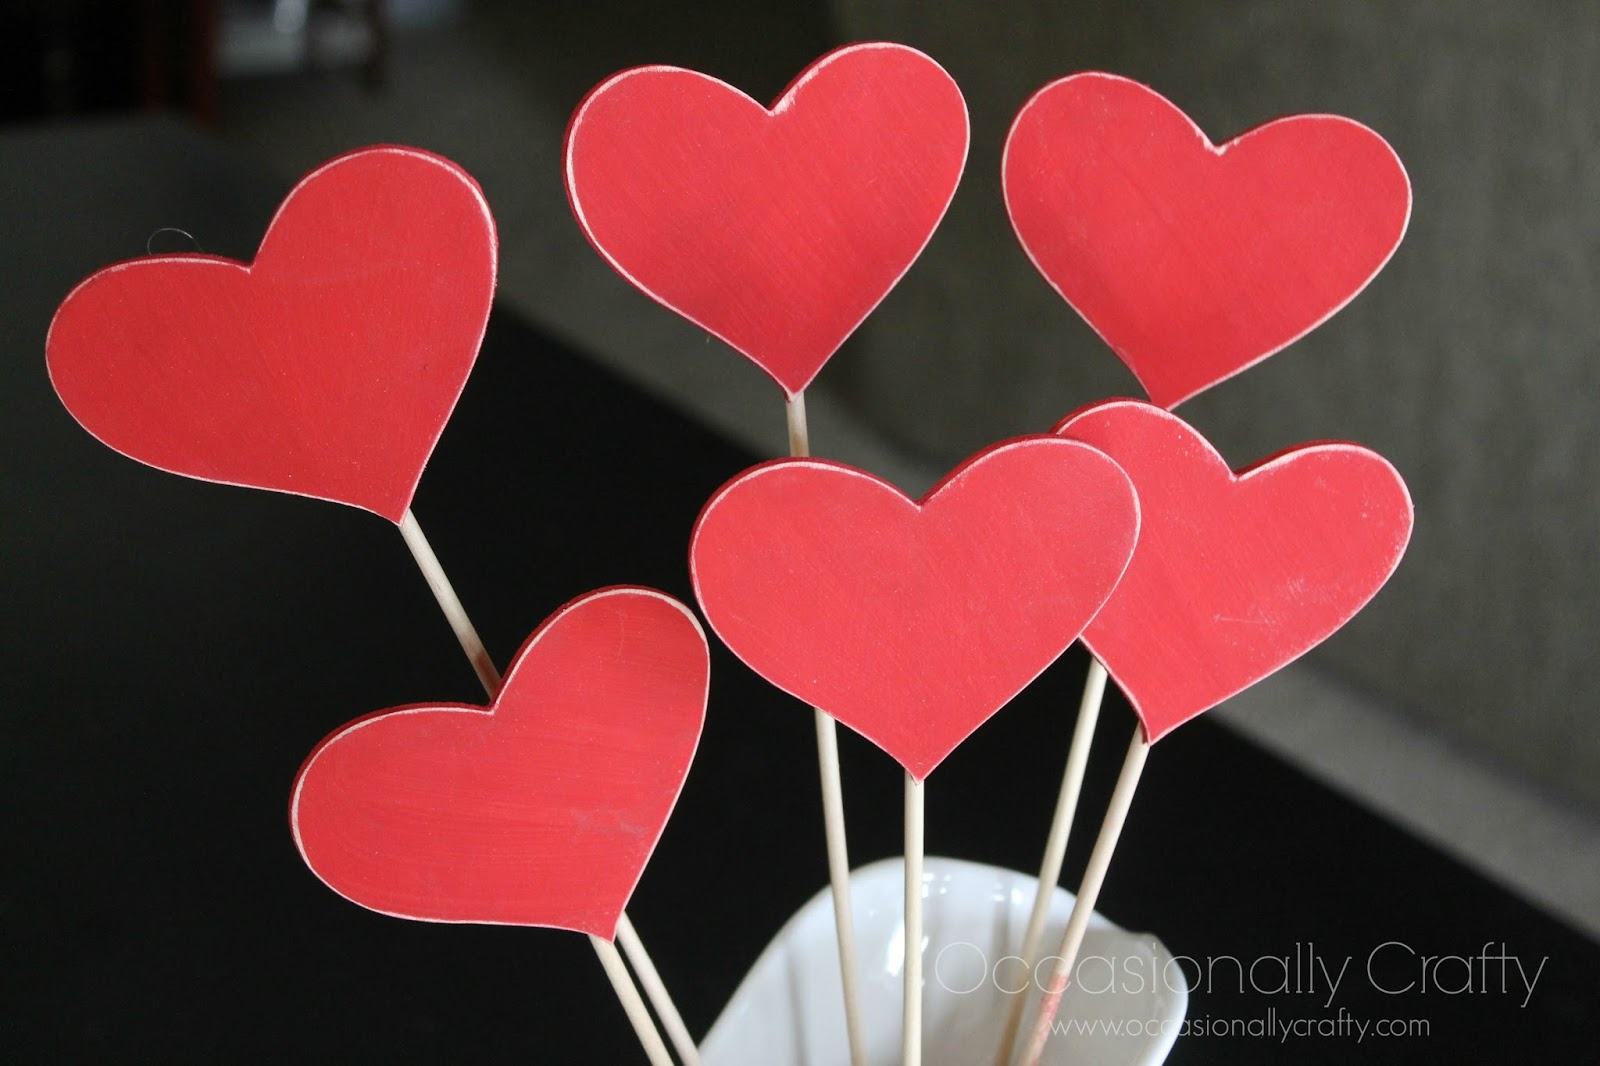 I Put Mine In A White Pitcher Vase Filled With Dry Beans So The Skewers  Will Stay In Place. There You Go  A Quick And Easy Valentineu0027s Day  Decoration!